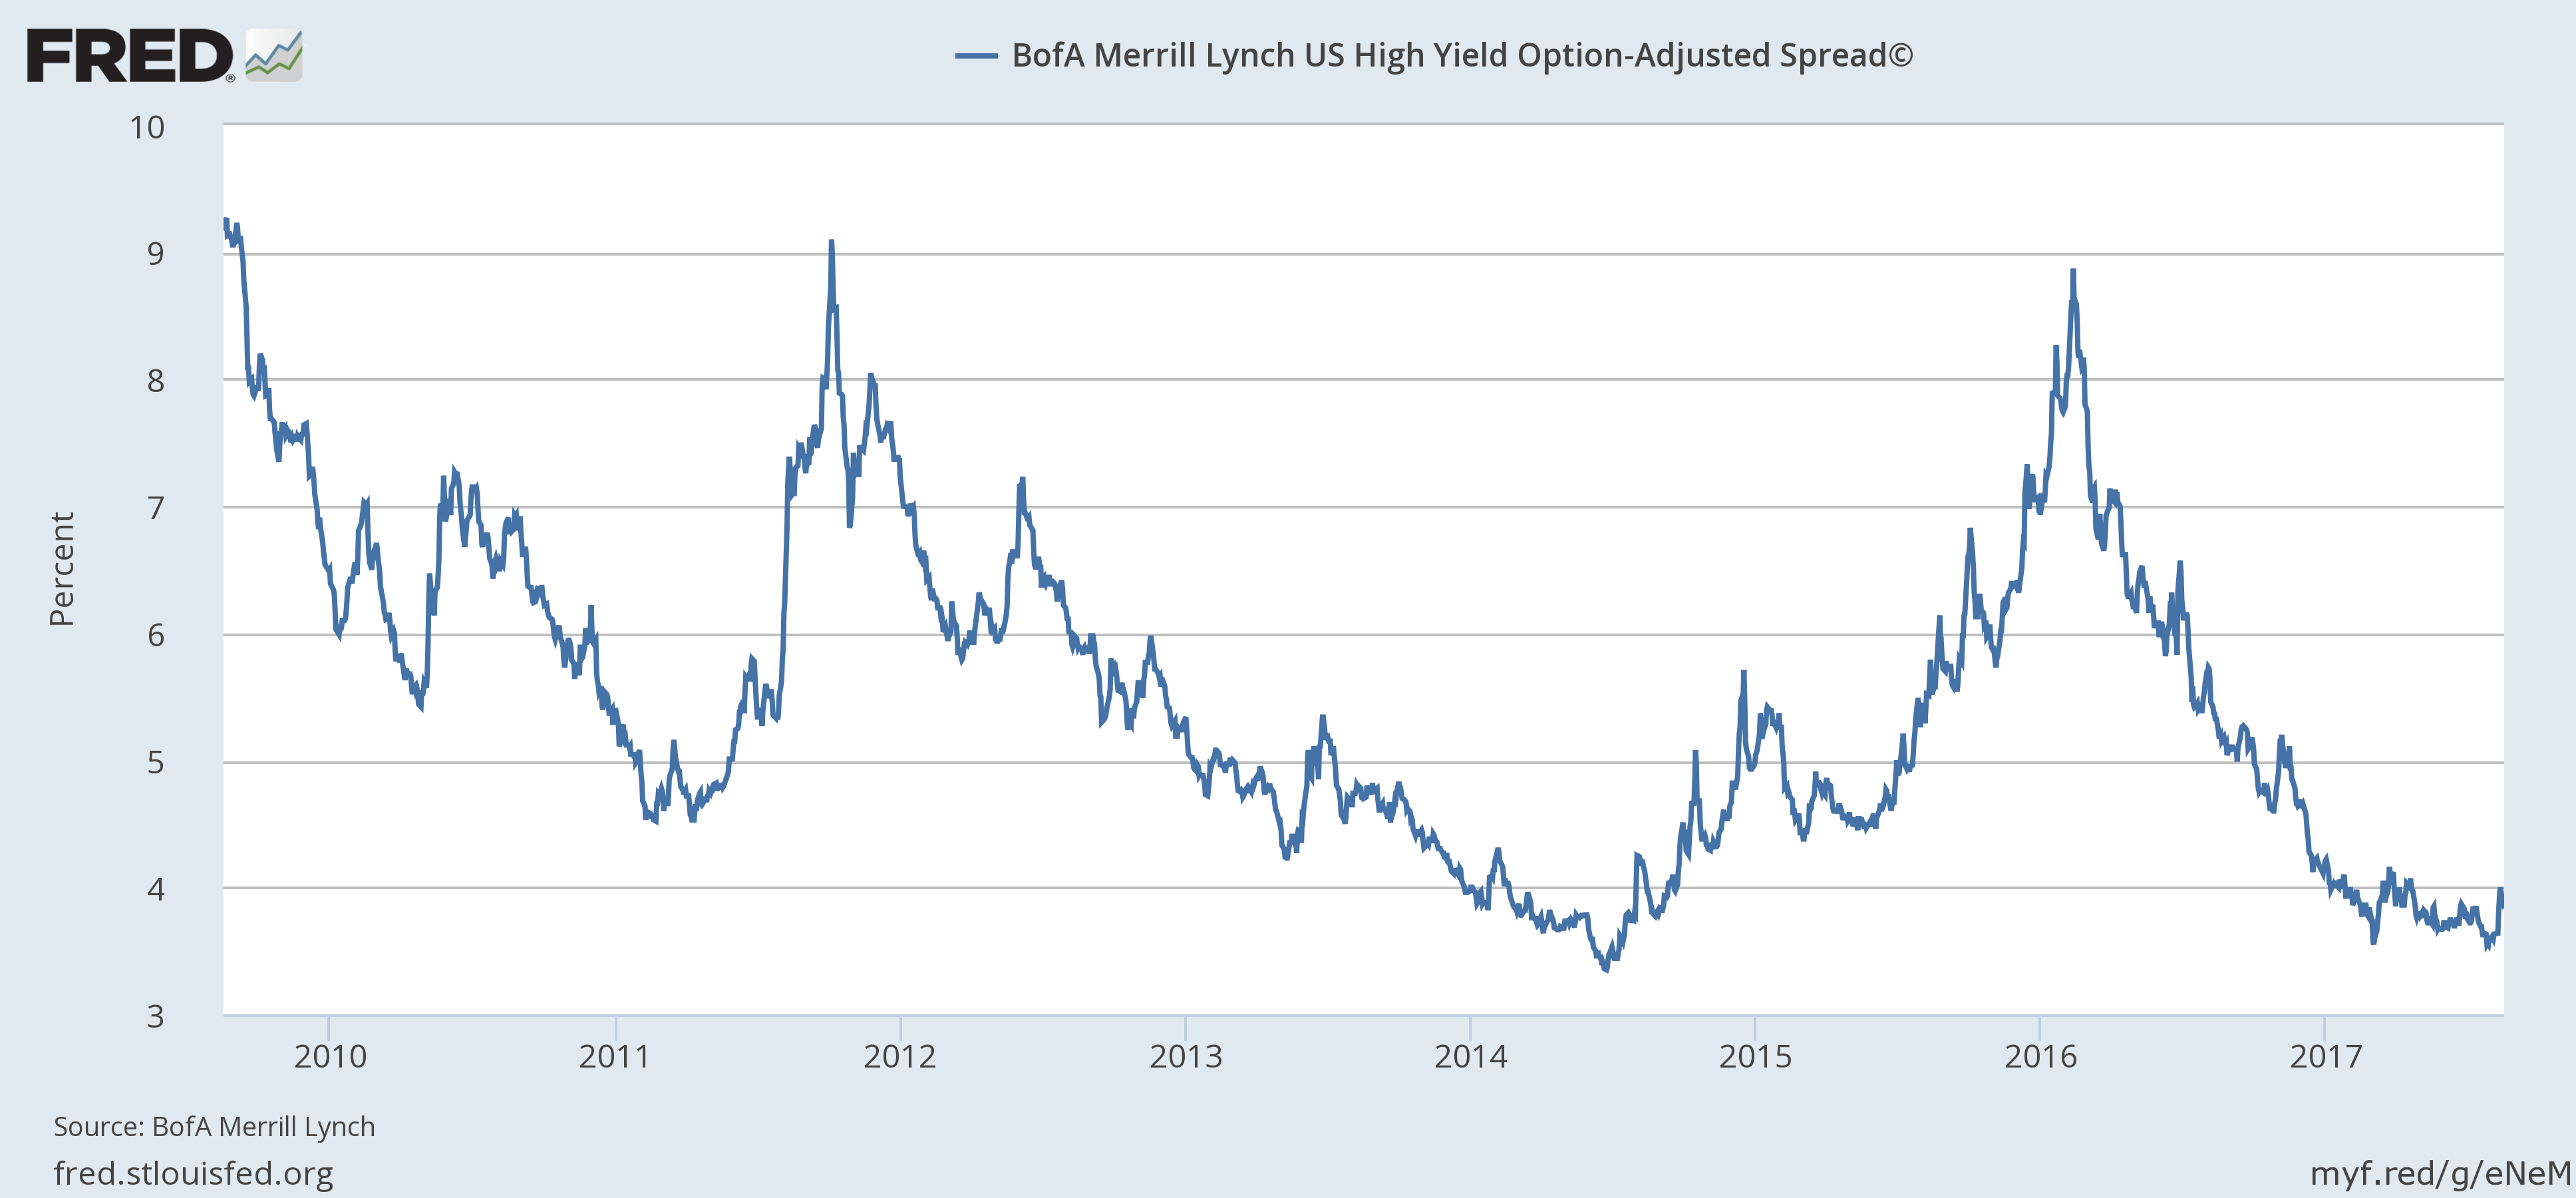 BofA Merrill Lynch U.S. High Yield Option - Adjusted Spread 2010-2017